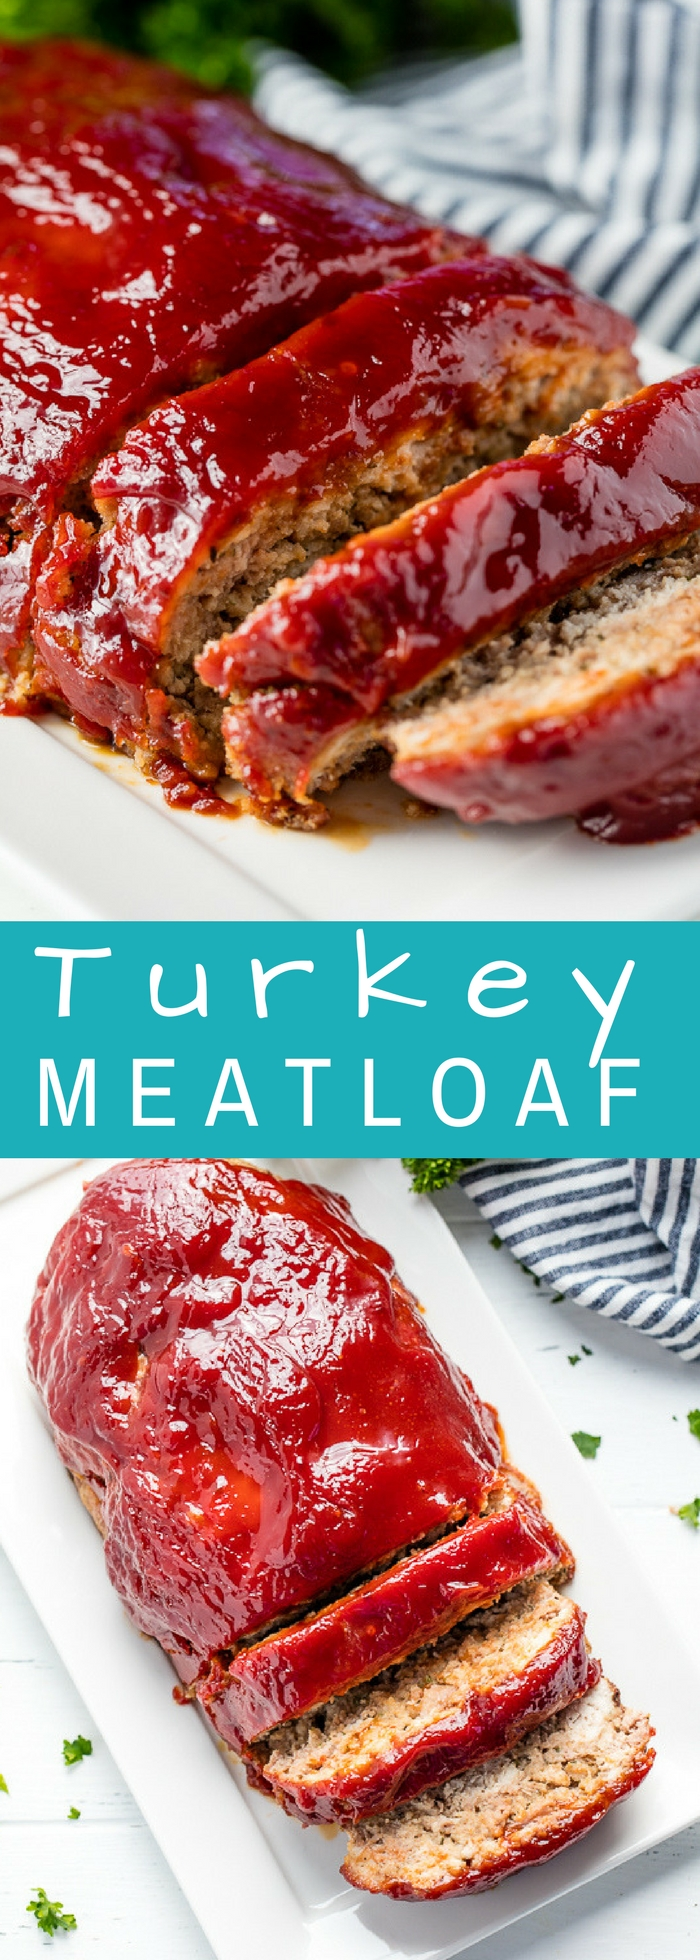 This Turkey Meatloaf recipe doesn't sacrifice any flavor. It's easy to make and is topped off with the most delicious glaze! Your family will love this heart healthy version of a classic American dinner.